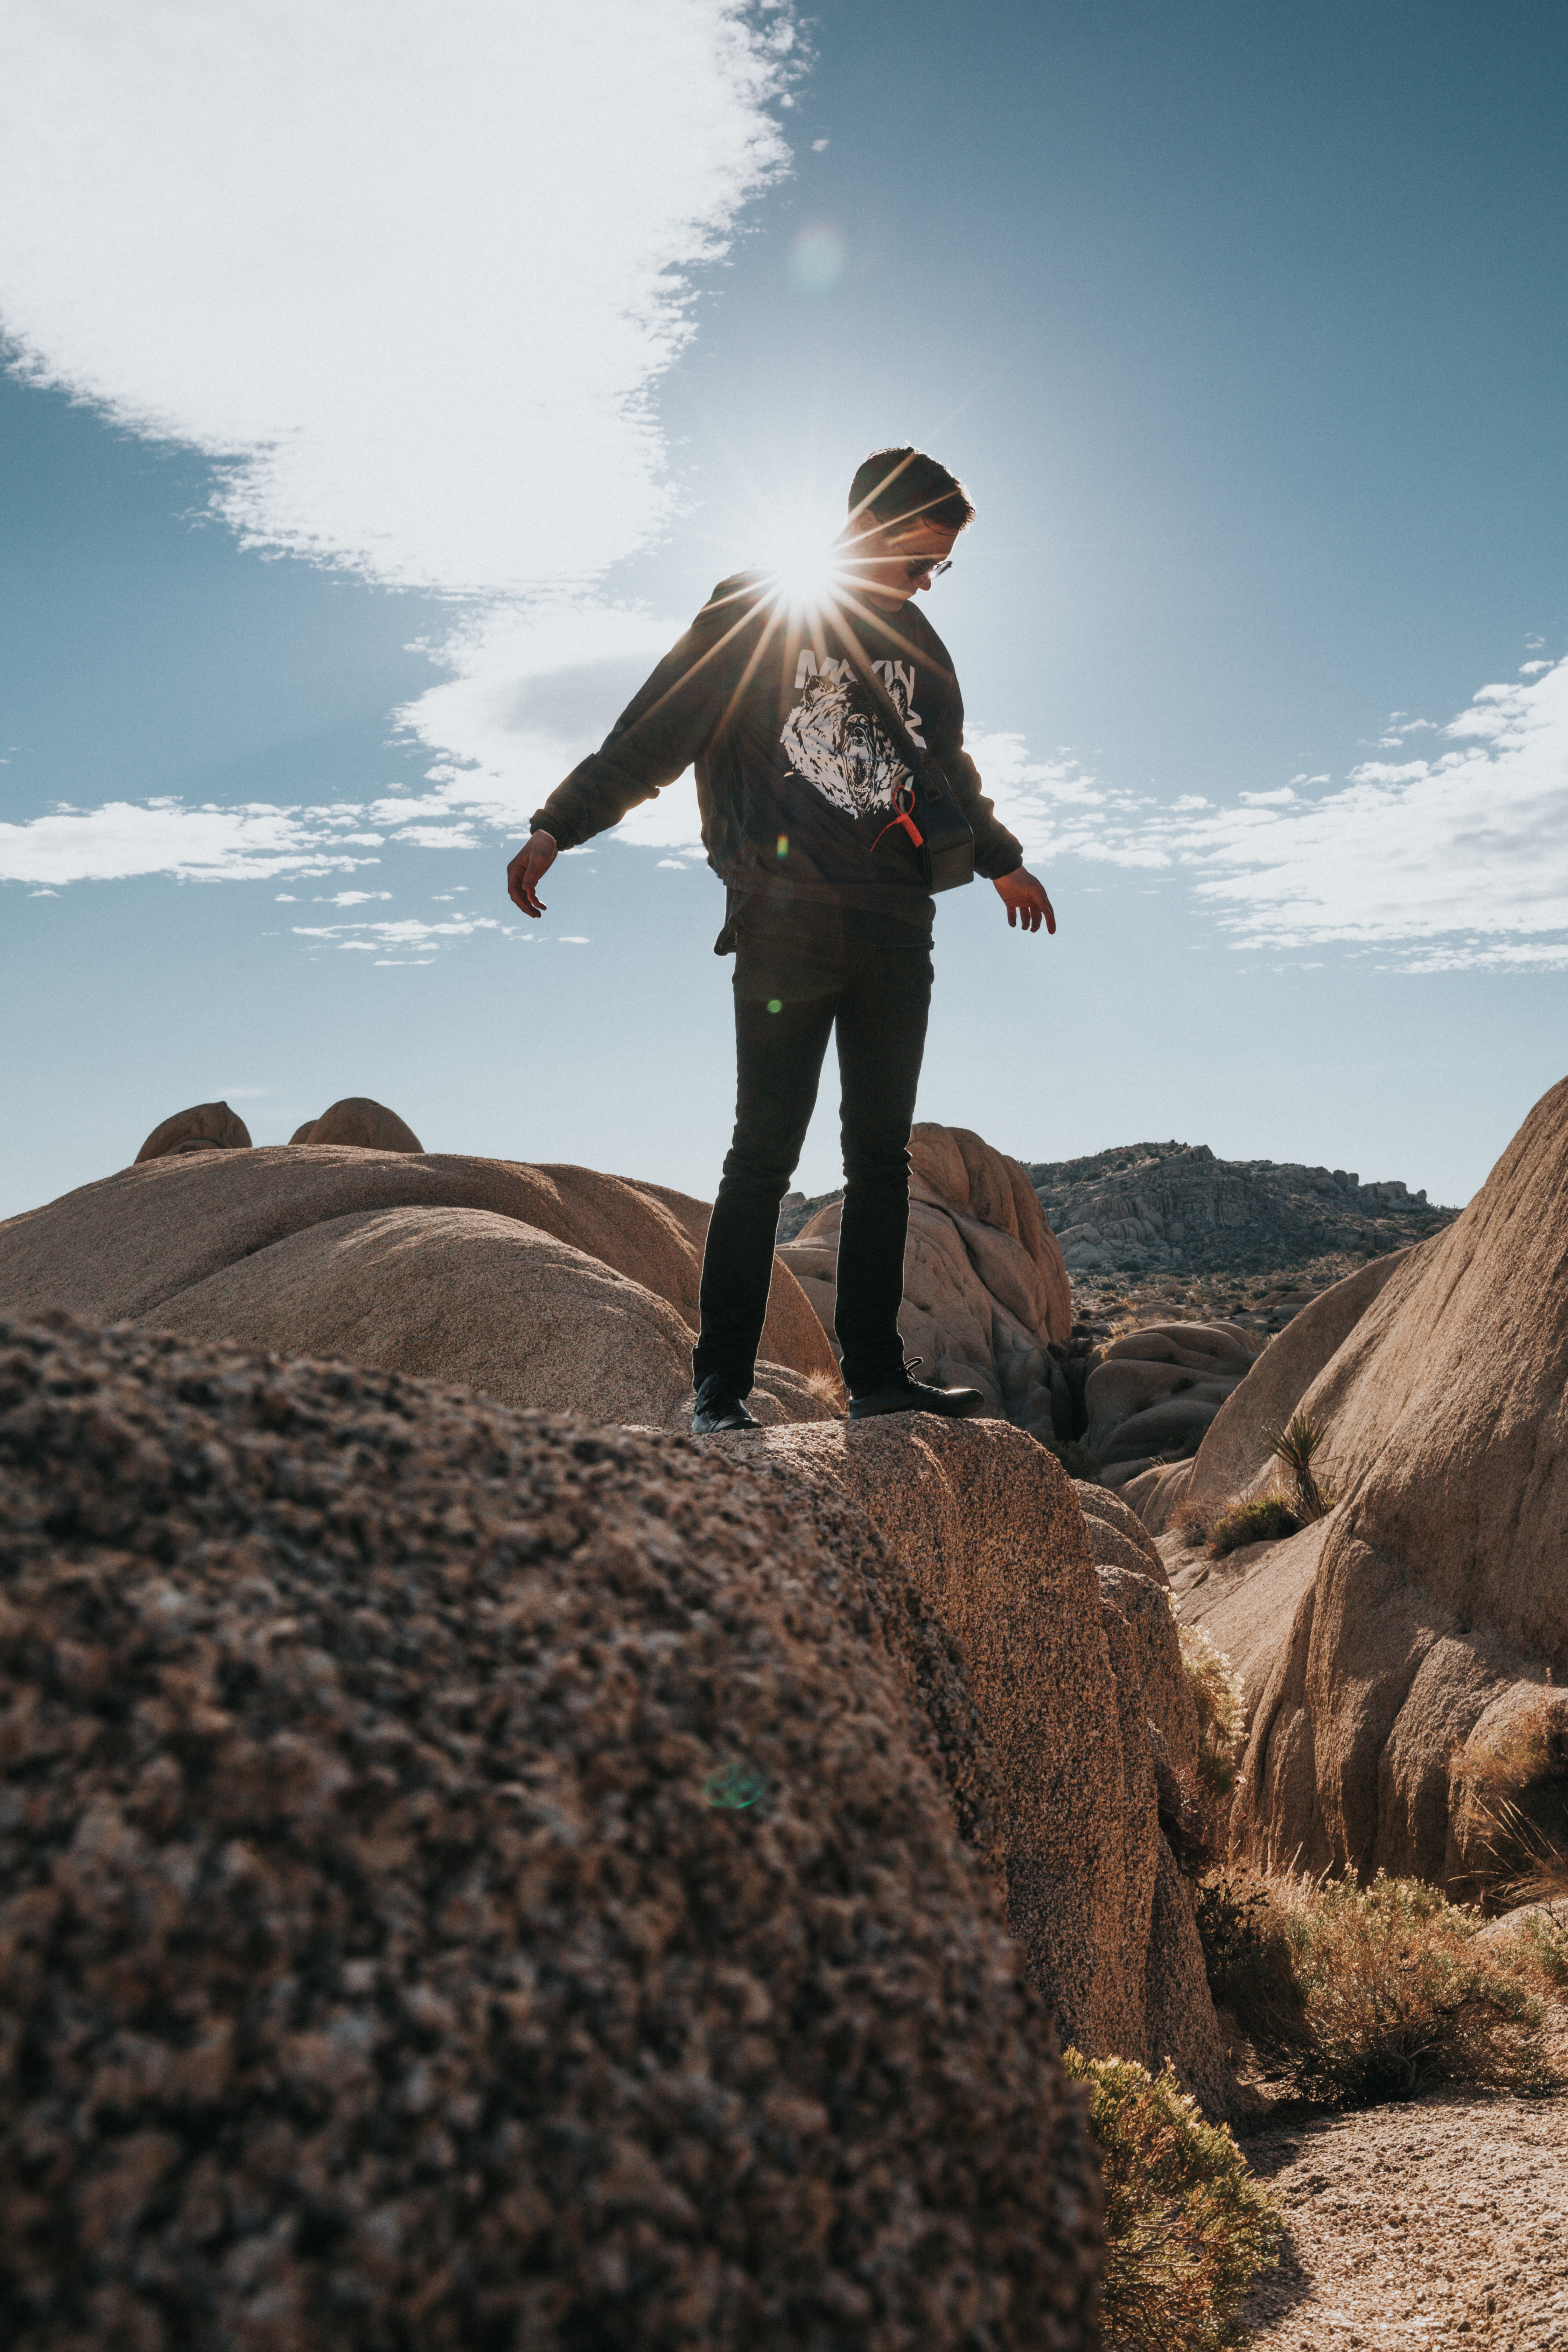 man looking down and standing on elevated rocky surface during daytime